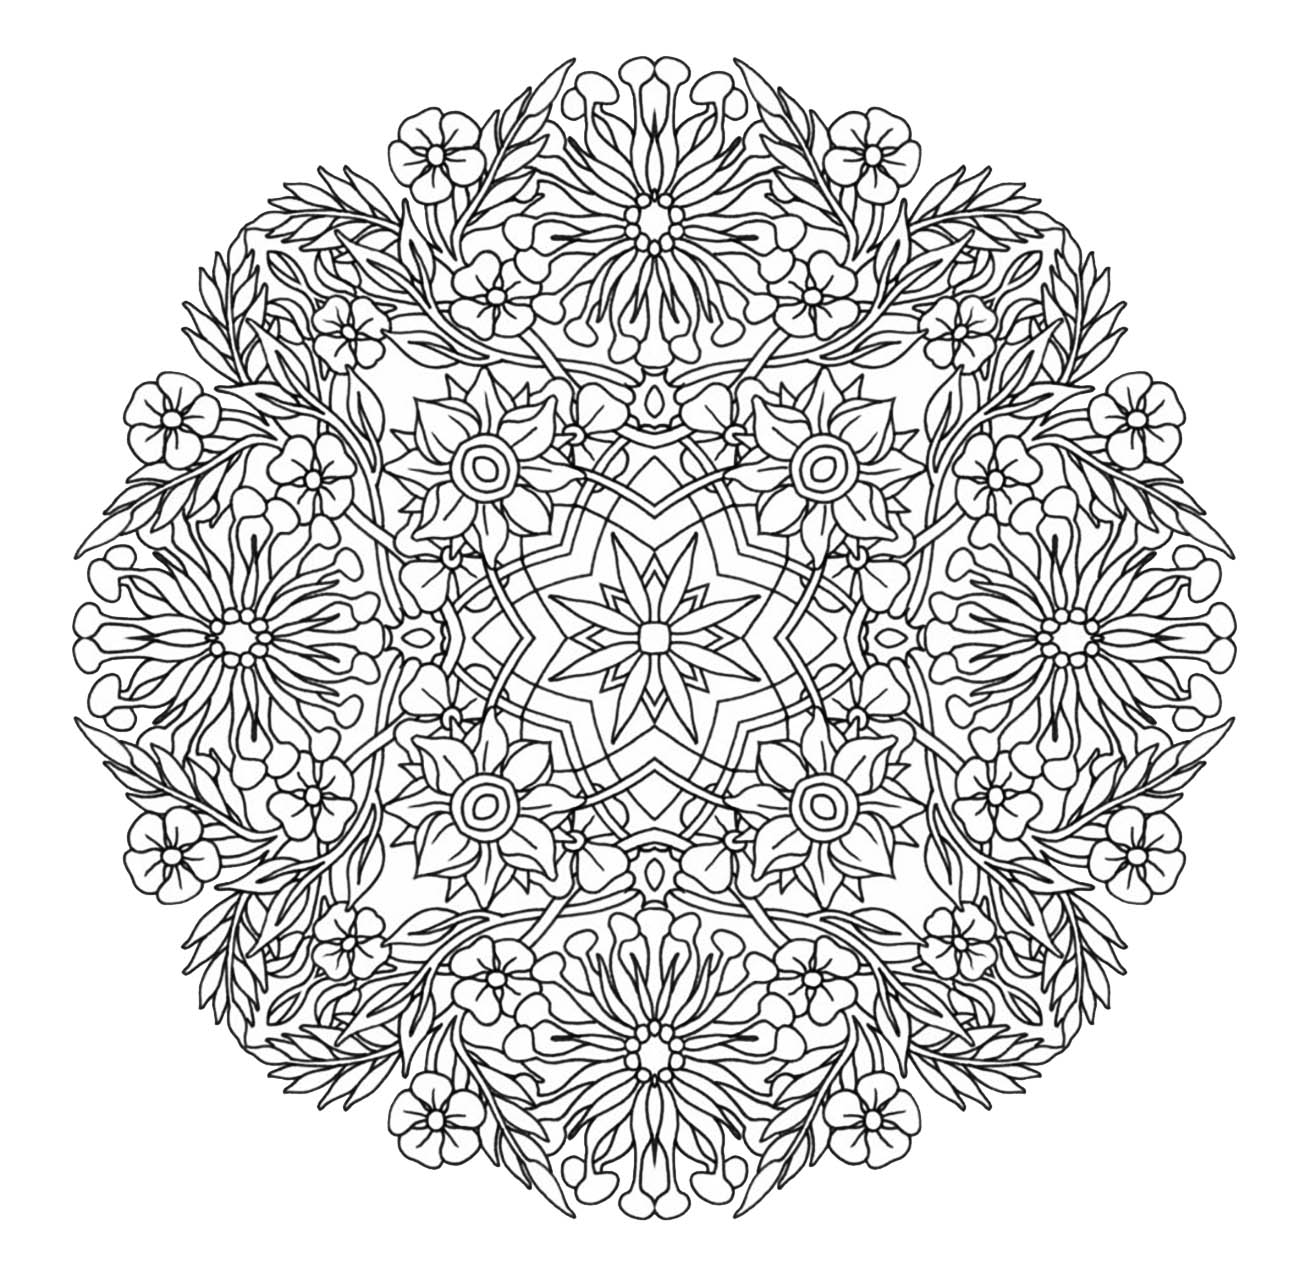 Mandala to download in pdf 9 - M&alas Adult Coloring Pages | coloring sheets for adults mandala